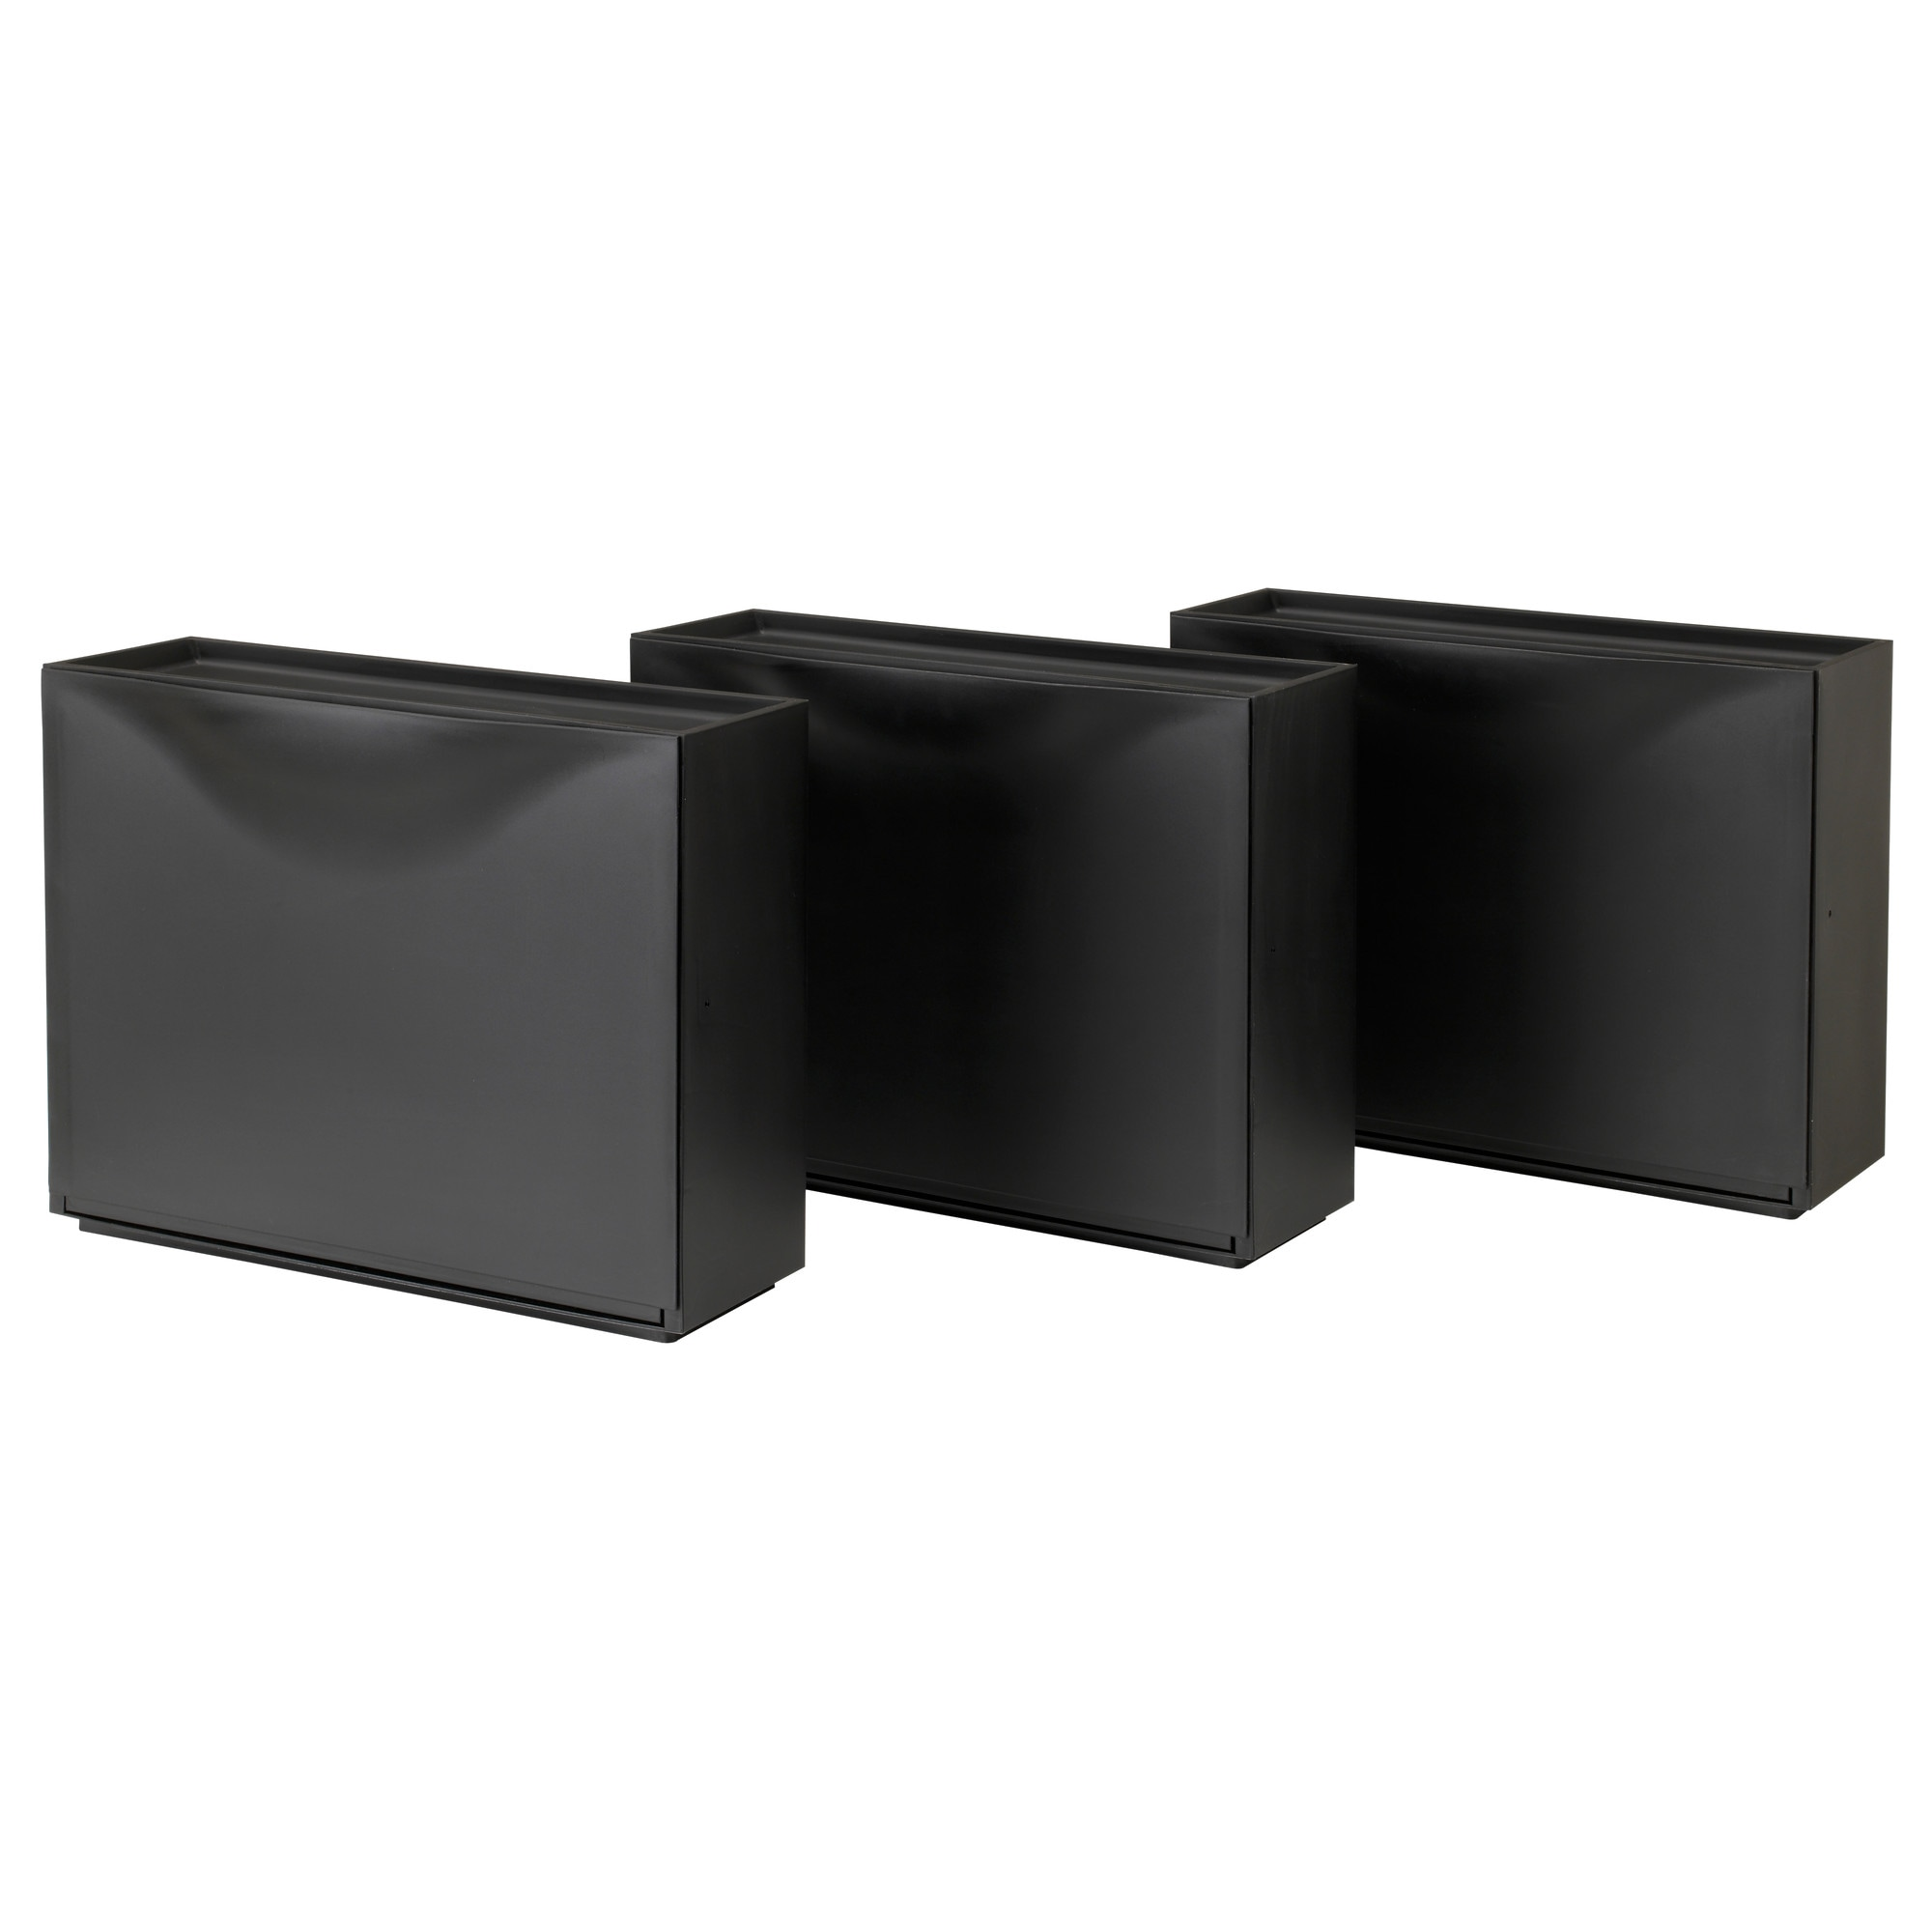 Design Ikea Shoe Storage trones shoestorage cabinet black ikea